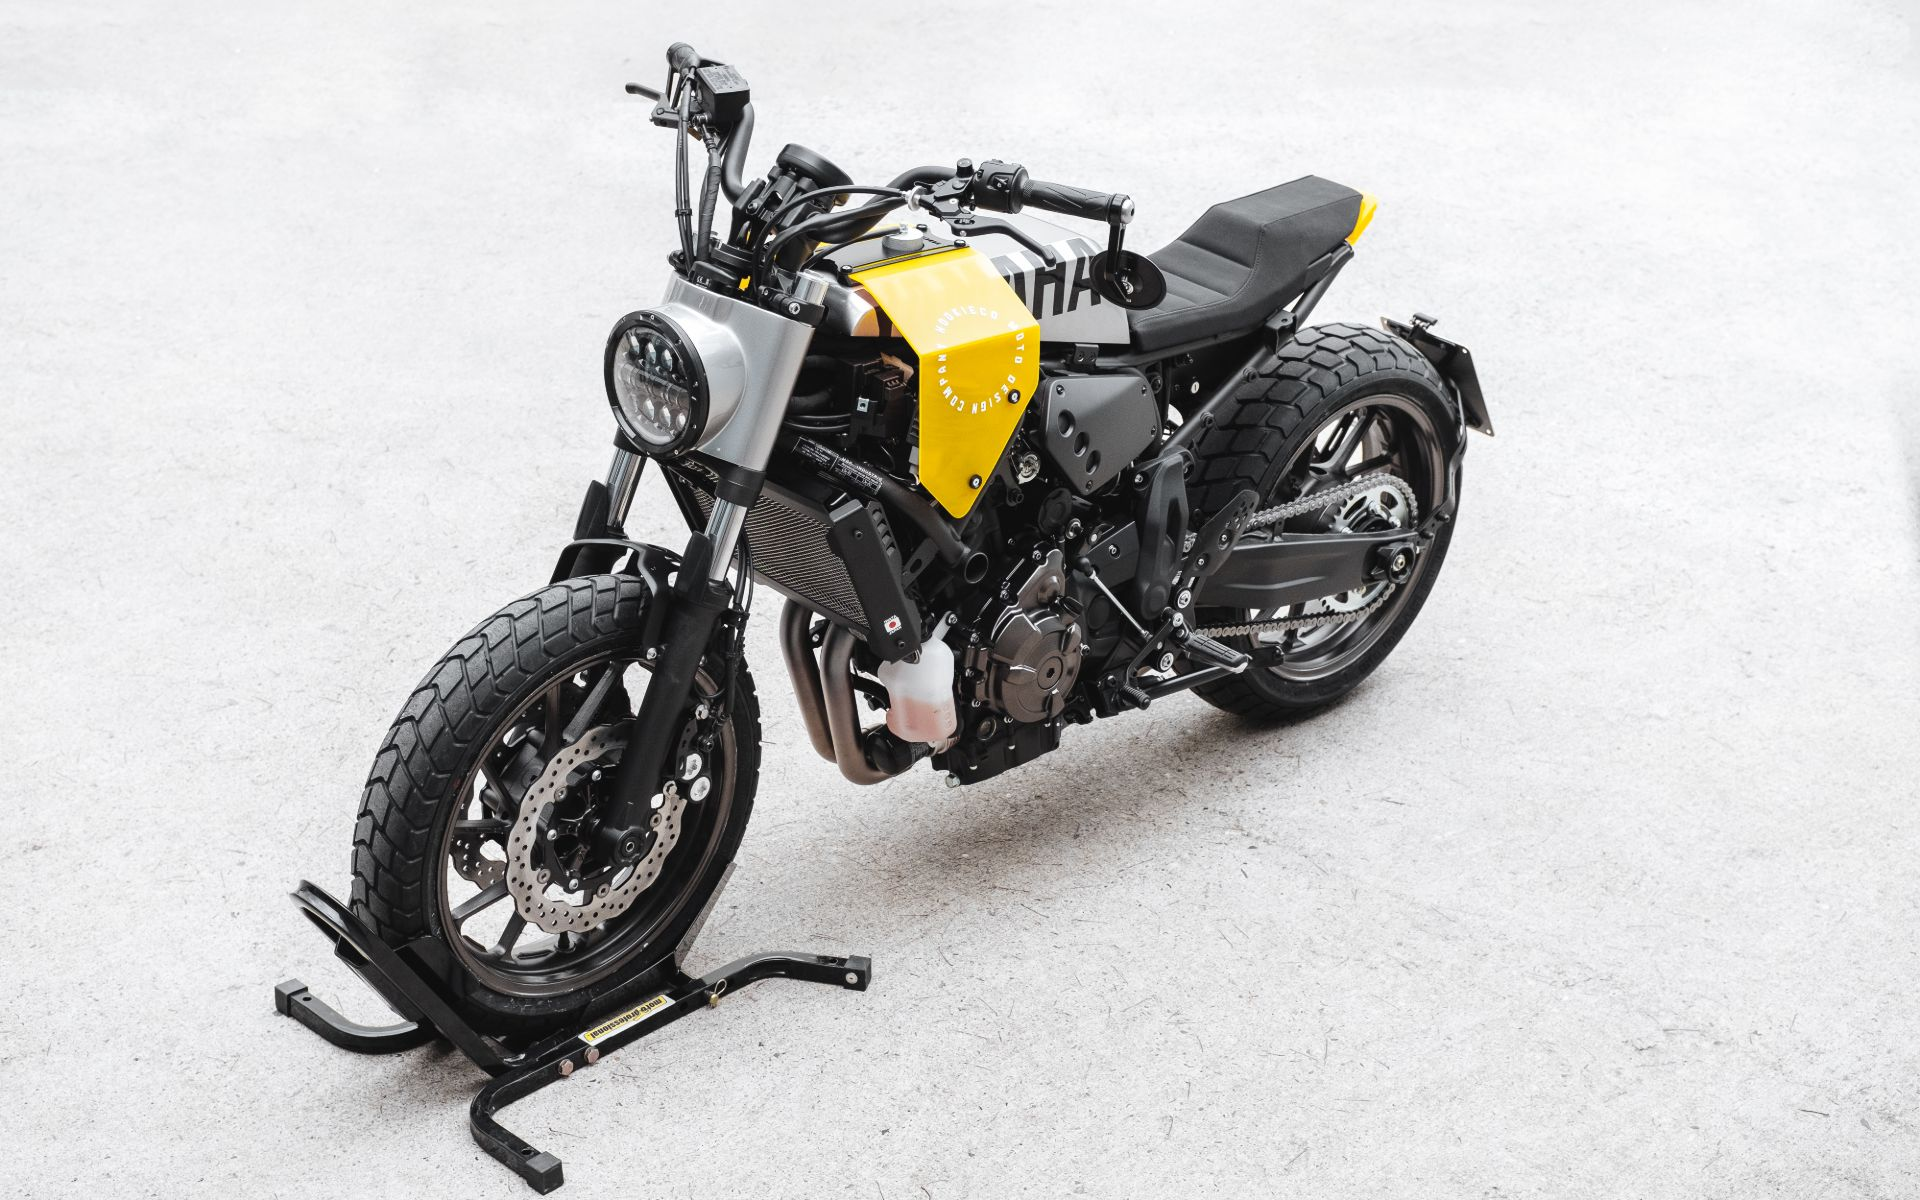 DIY XSR700 tracker kit custom motorcycle australia